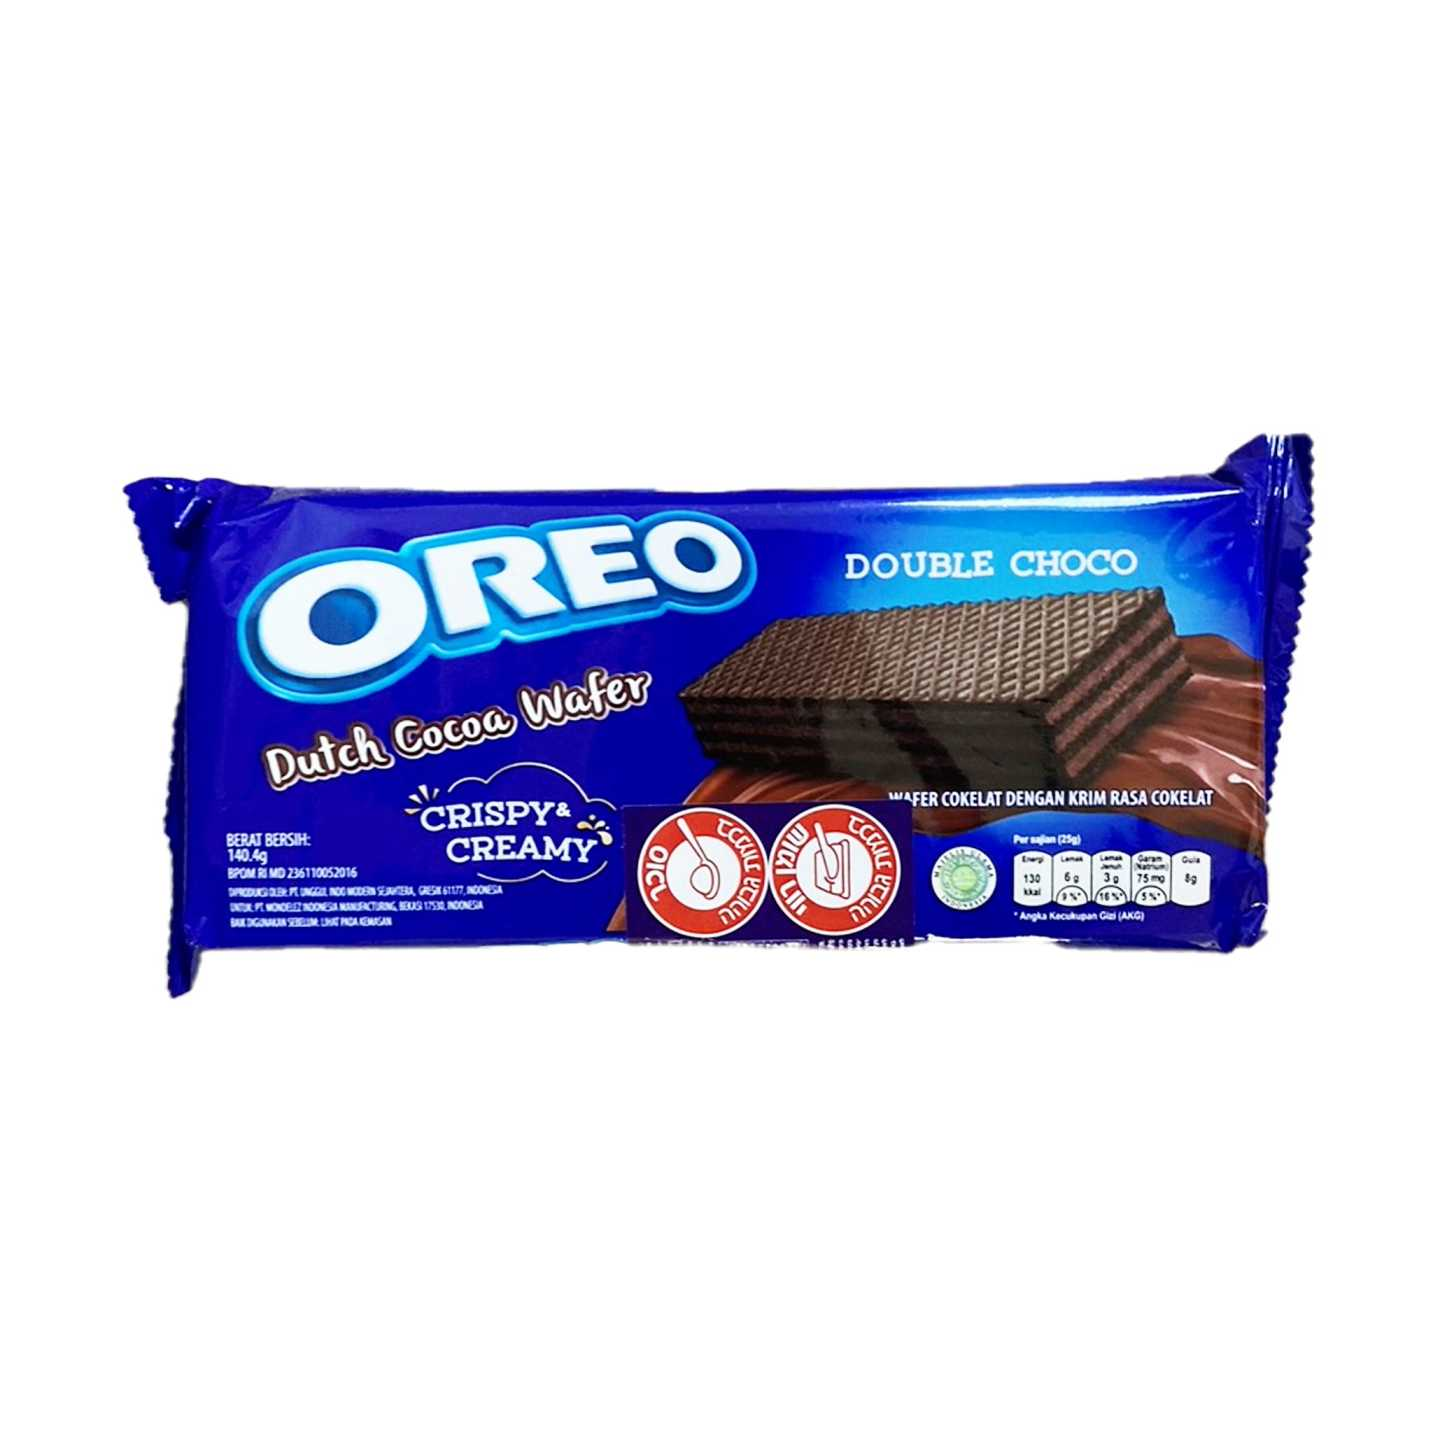 Oreo double Choco wafer ופל אוראו דבל שוקו